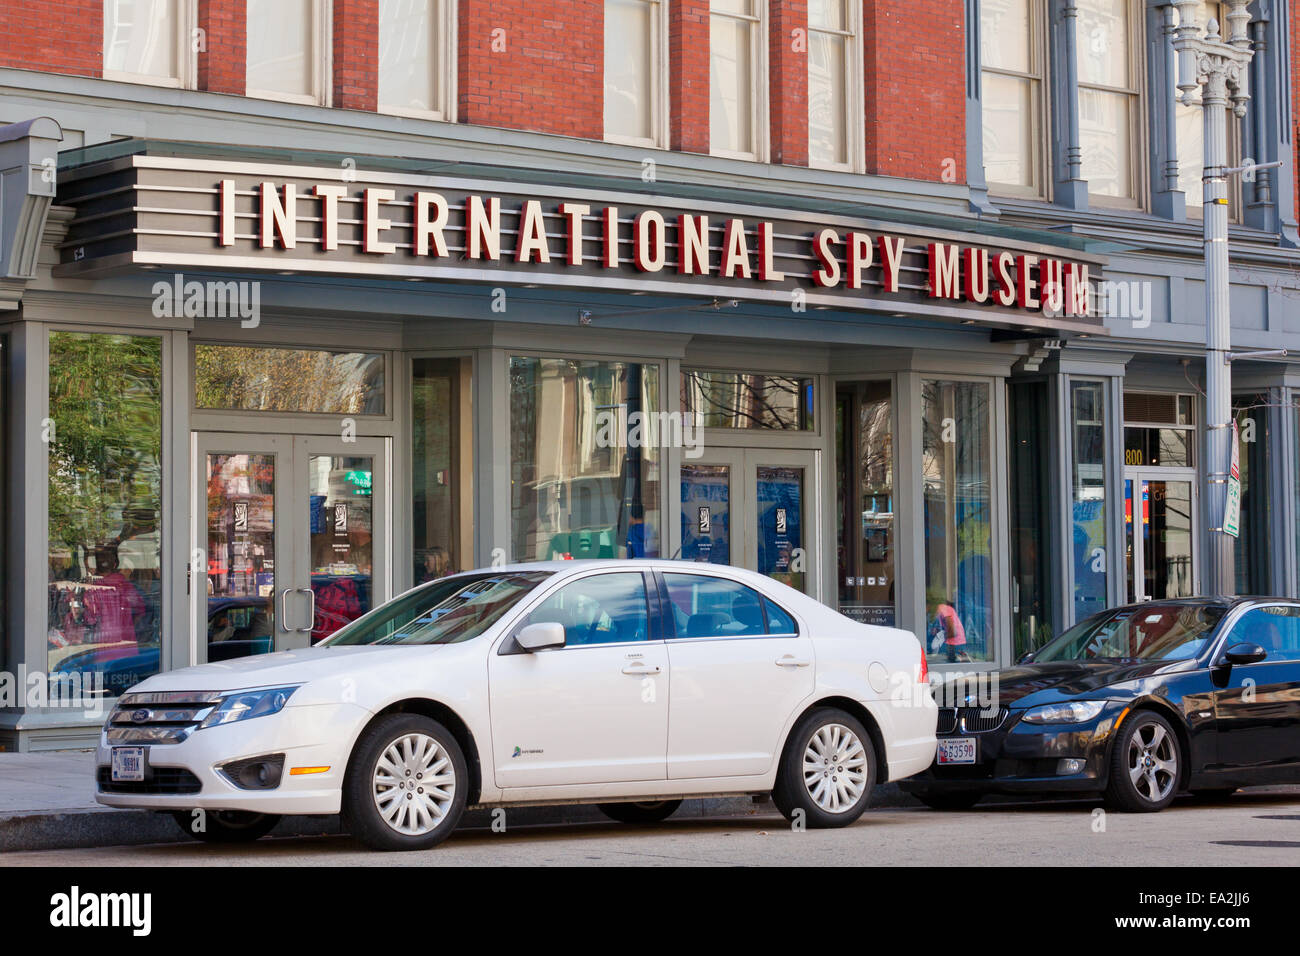 International Spy Museum front - Washington, DC - Stock Image